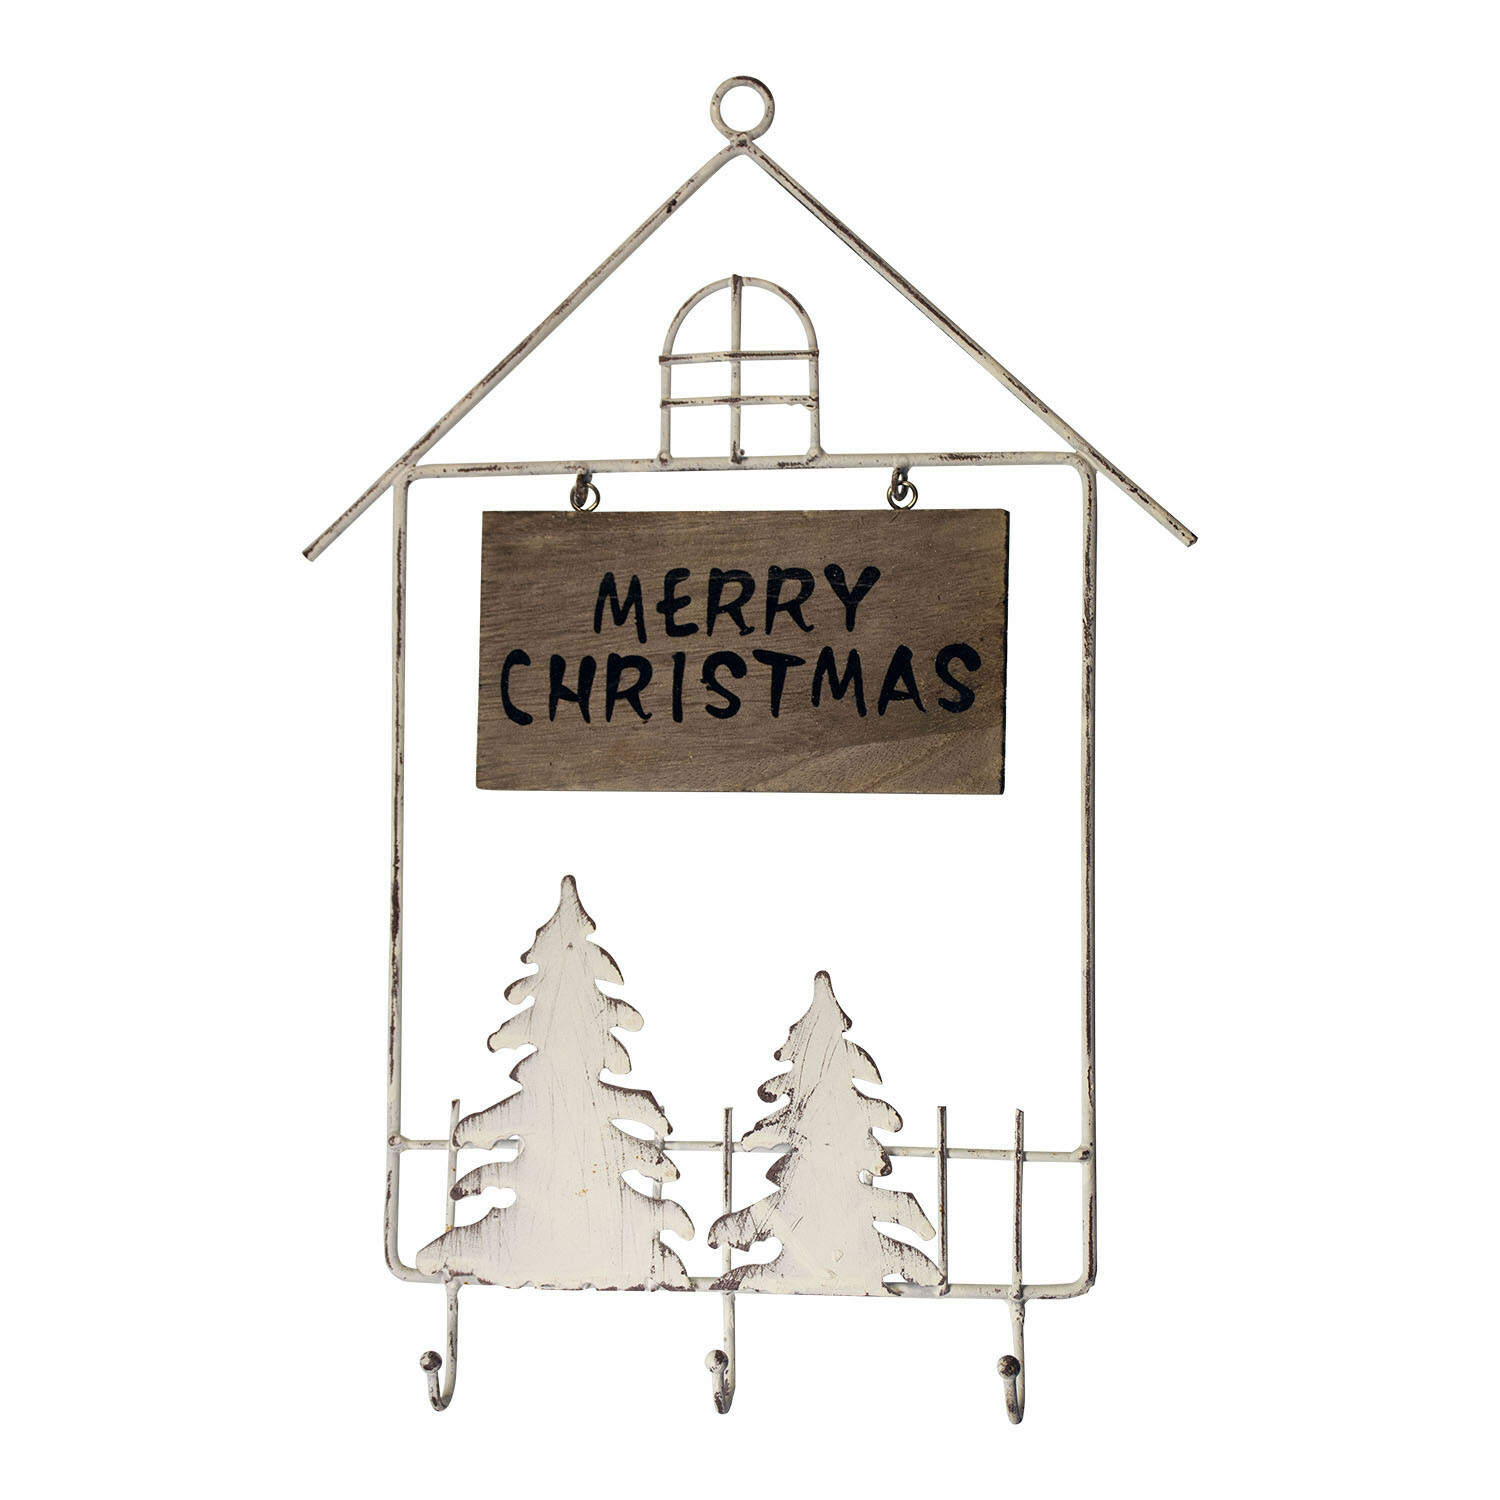 losse-thee-tea4you-Merry Christmas hanger-31